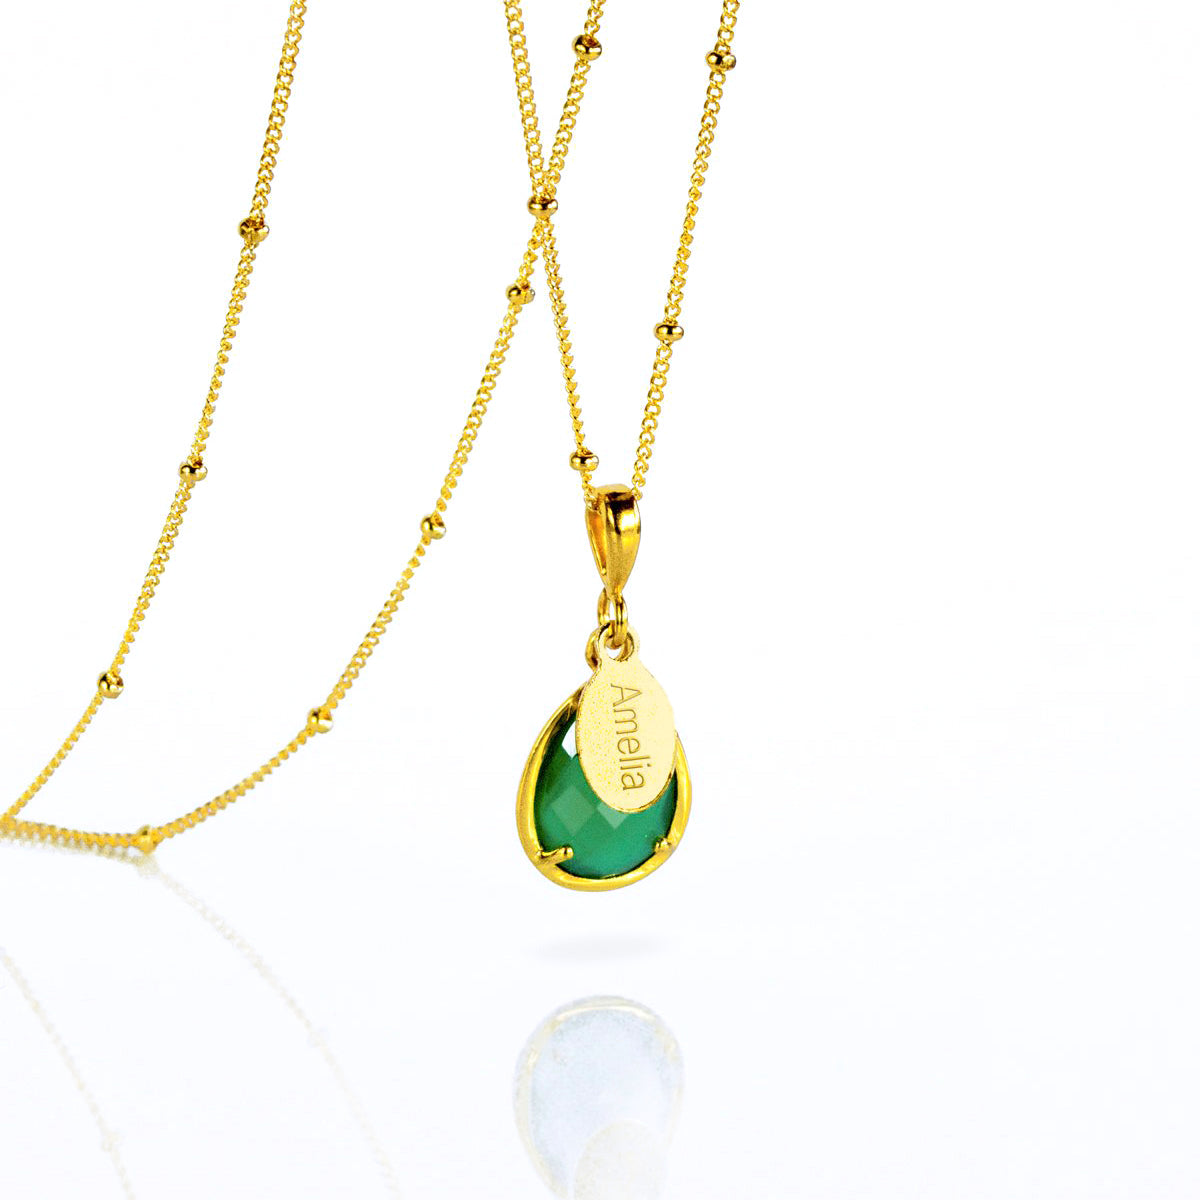 Green Onyx Coin Gemstone Necklace  May Birthstone Jewelry for Her  Birthday New Mom Best Friend Gift Idea Anniversary